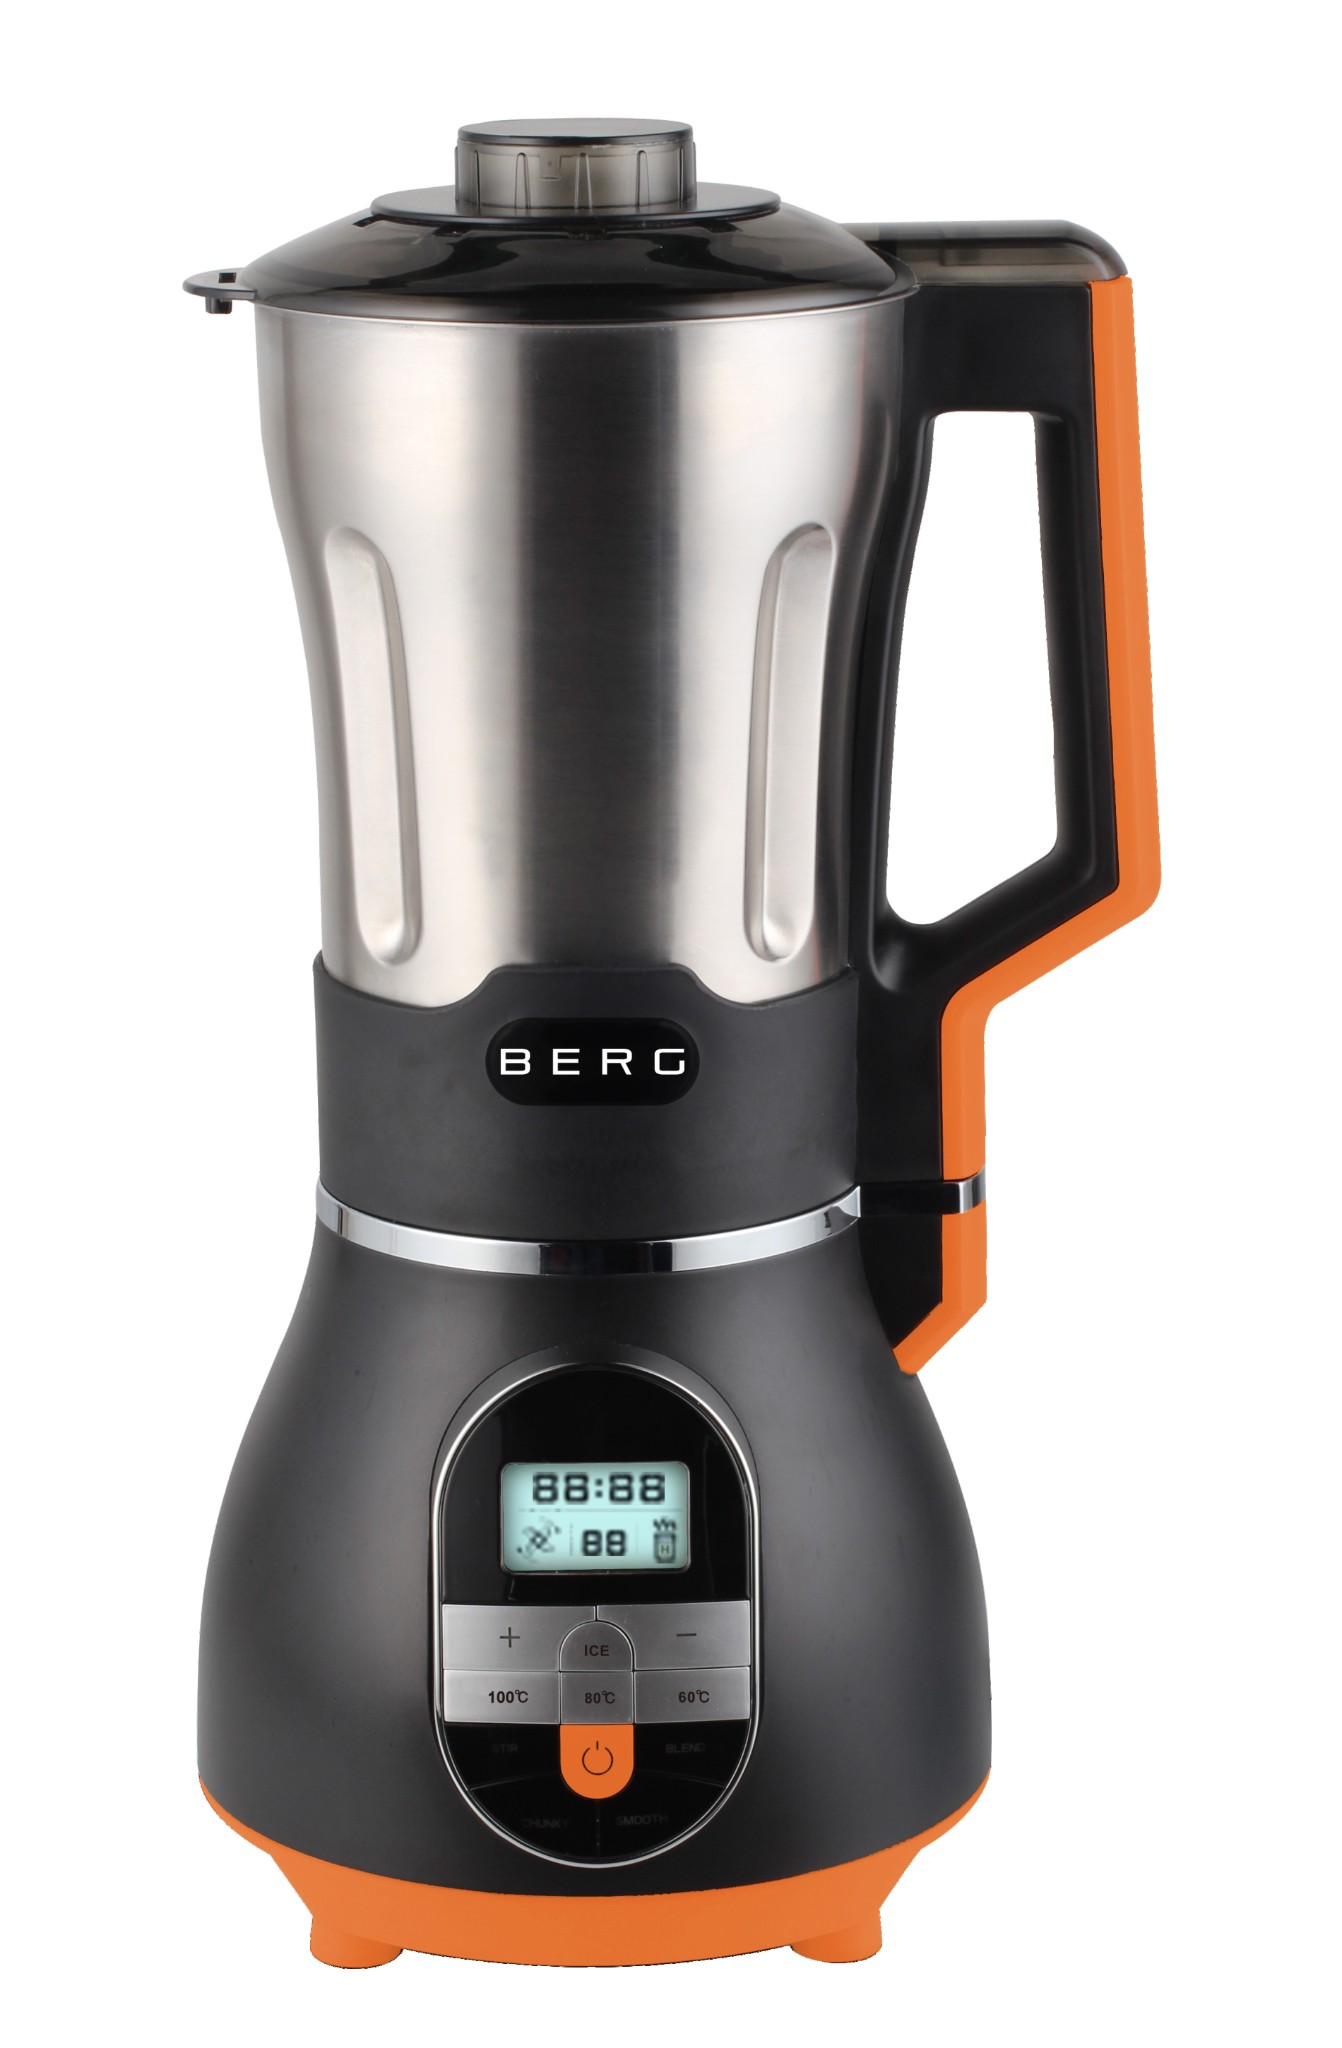 Berg Soup Maker Blender